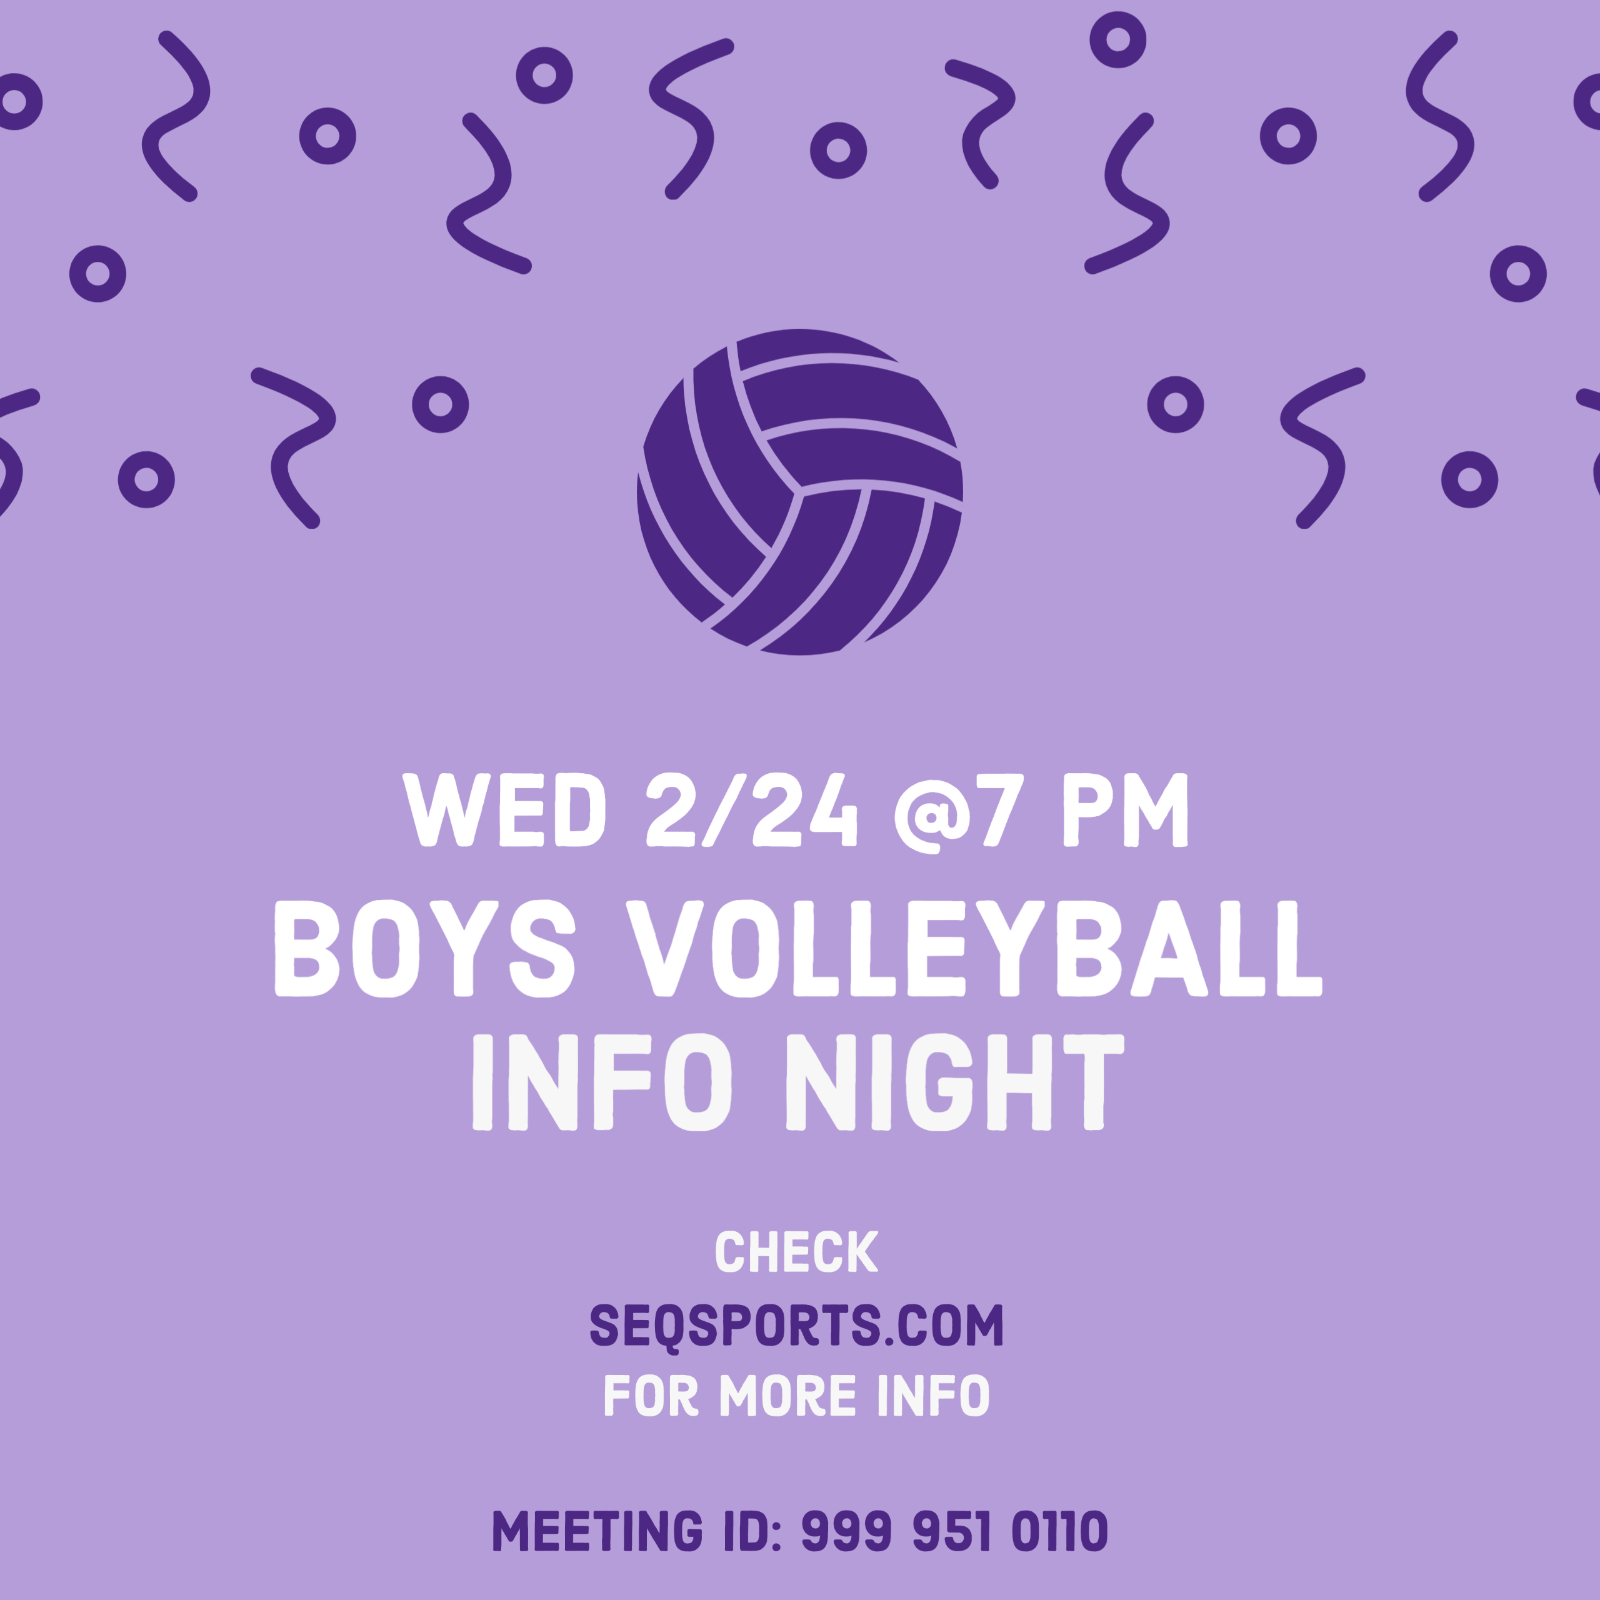 Boys Volleyball Info Meeting Wednesday 2/24 at 7pm